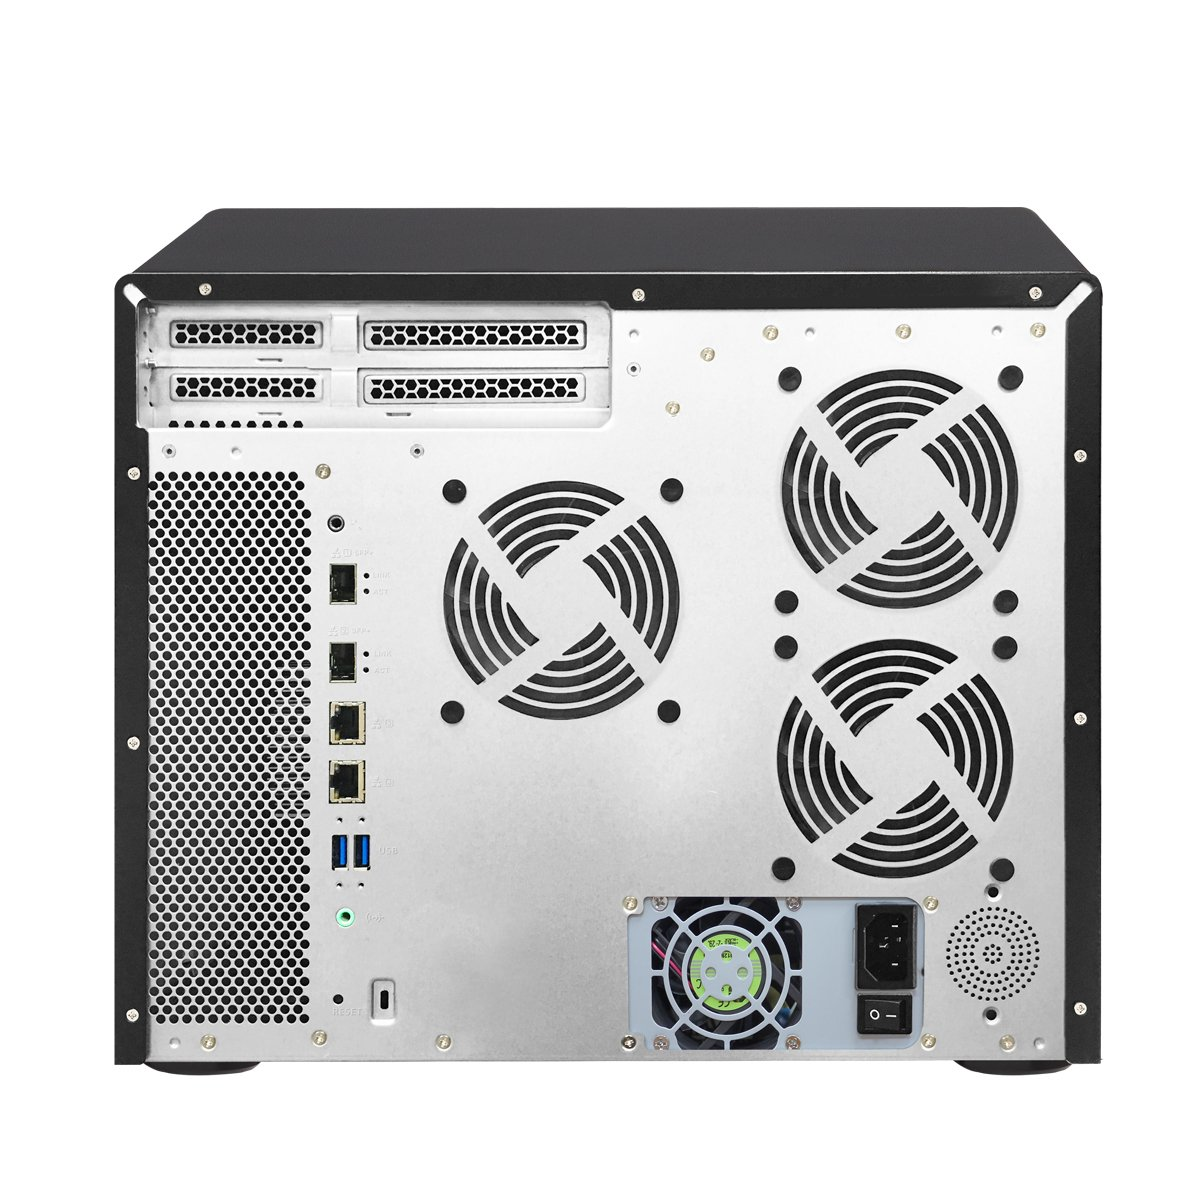 Qnap TS-1635-8G-US Cost-Effective, High-Capacity Quad-Core 16-Bay Business NAS by QNAP (Image #3)